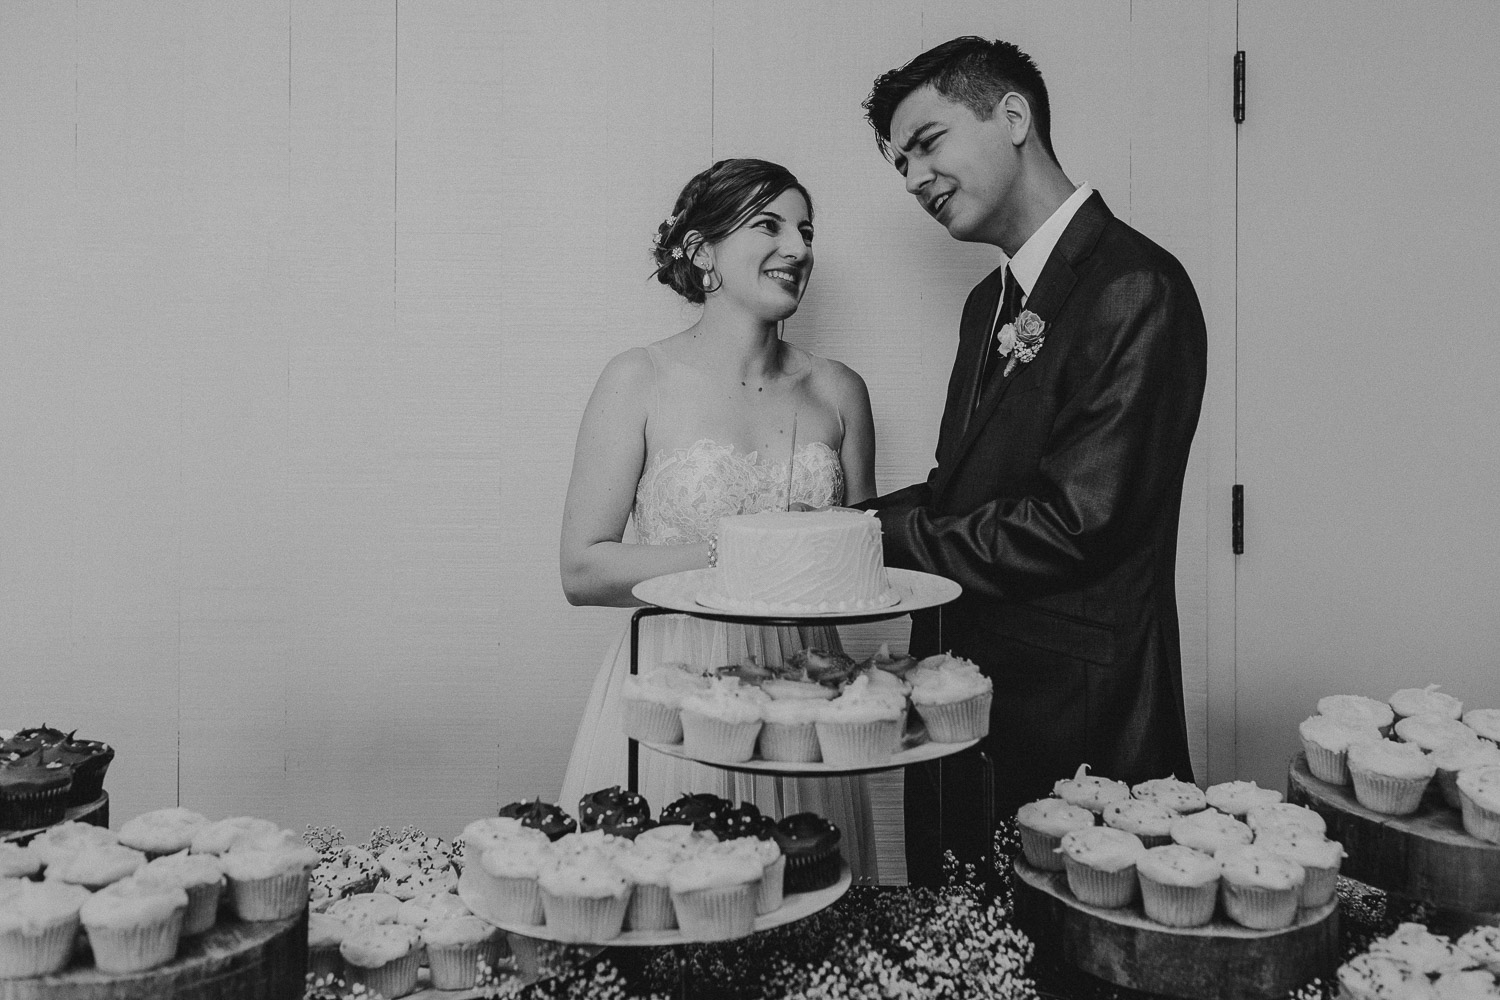 Image of cake cutting